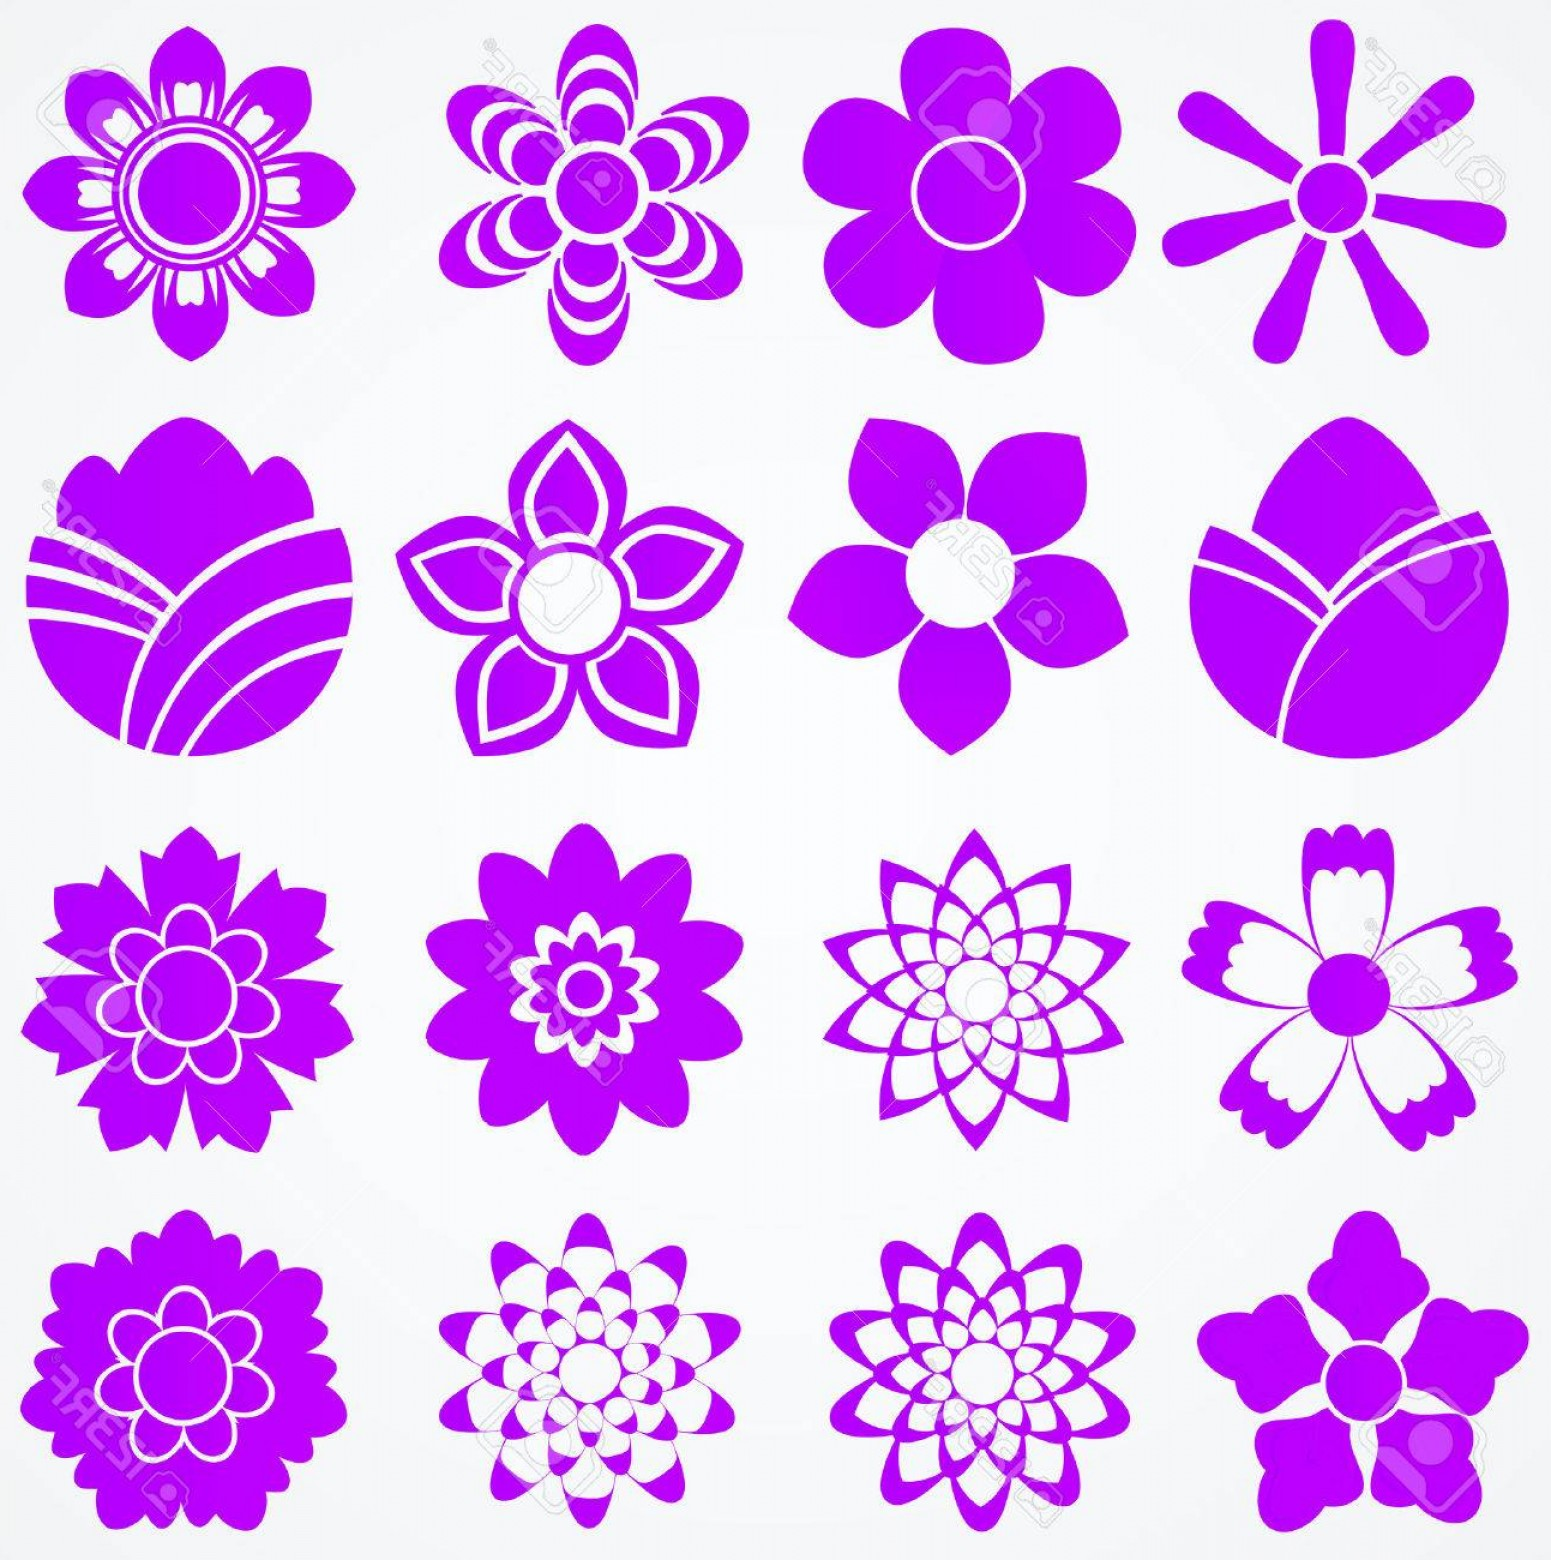 Floral Vector Icon: Photoset Of Flowers Floral Vector Icons